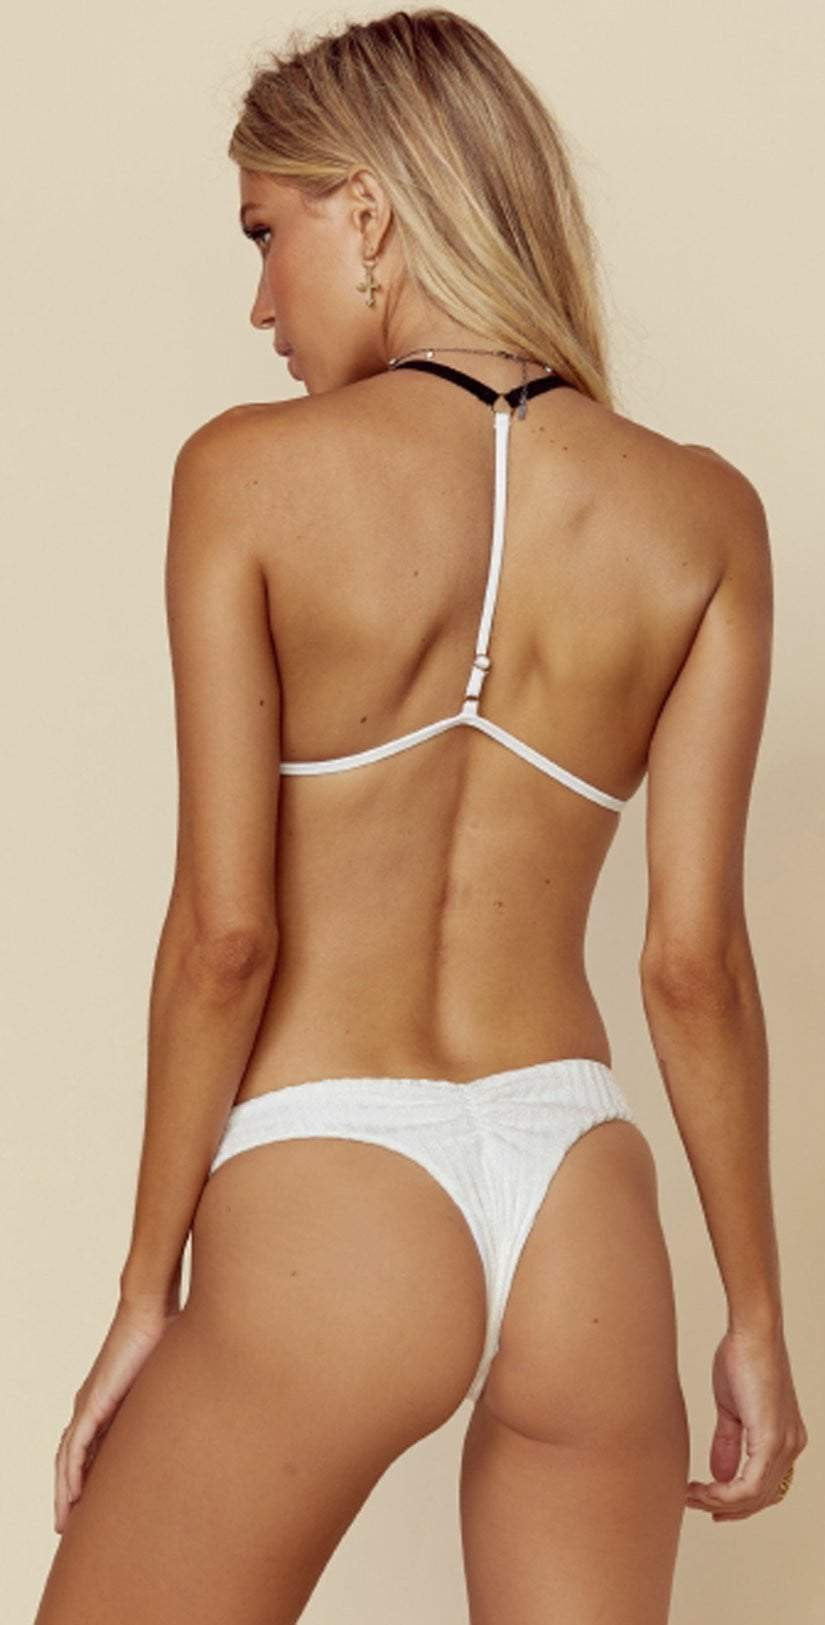 Blue Life Island Fever Brazilian Bottom in Diamond White 444-9020: